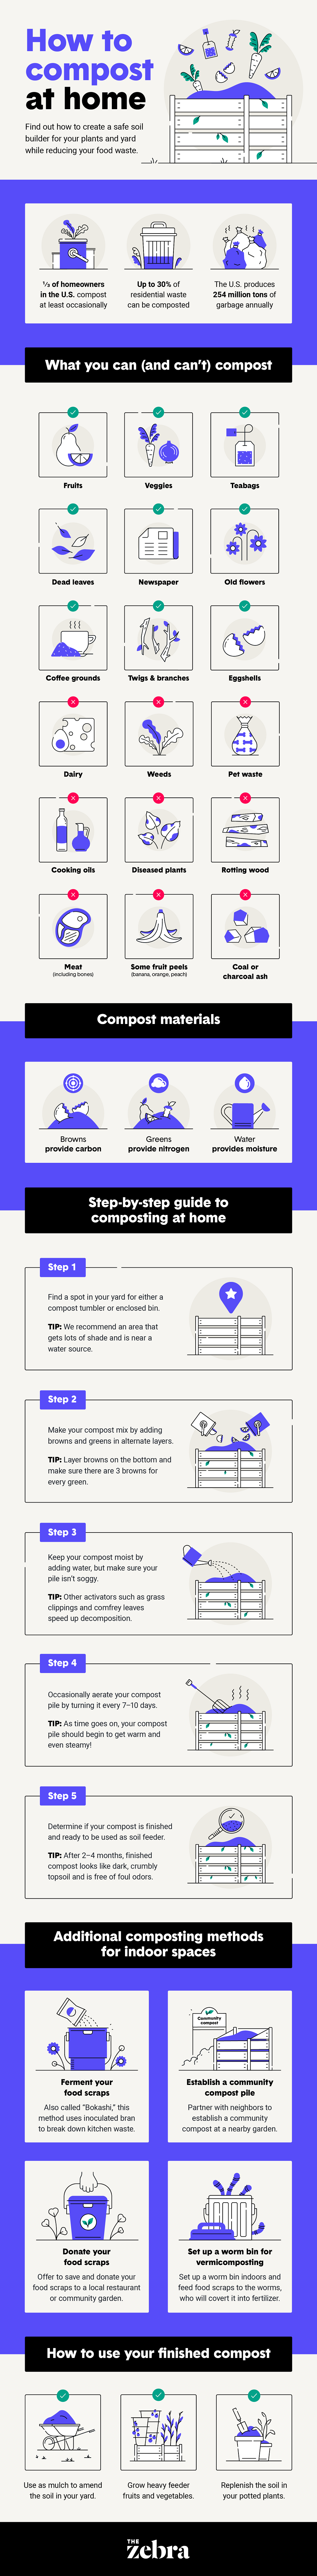 Infographic: How To Compost At Home